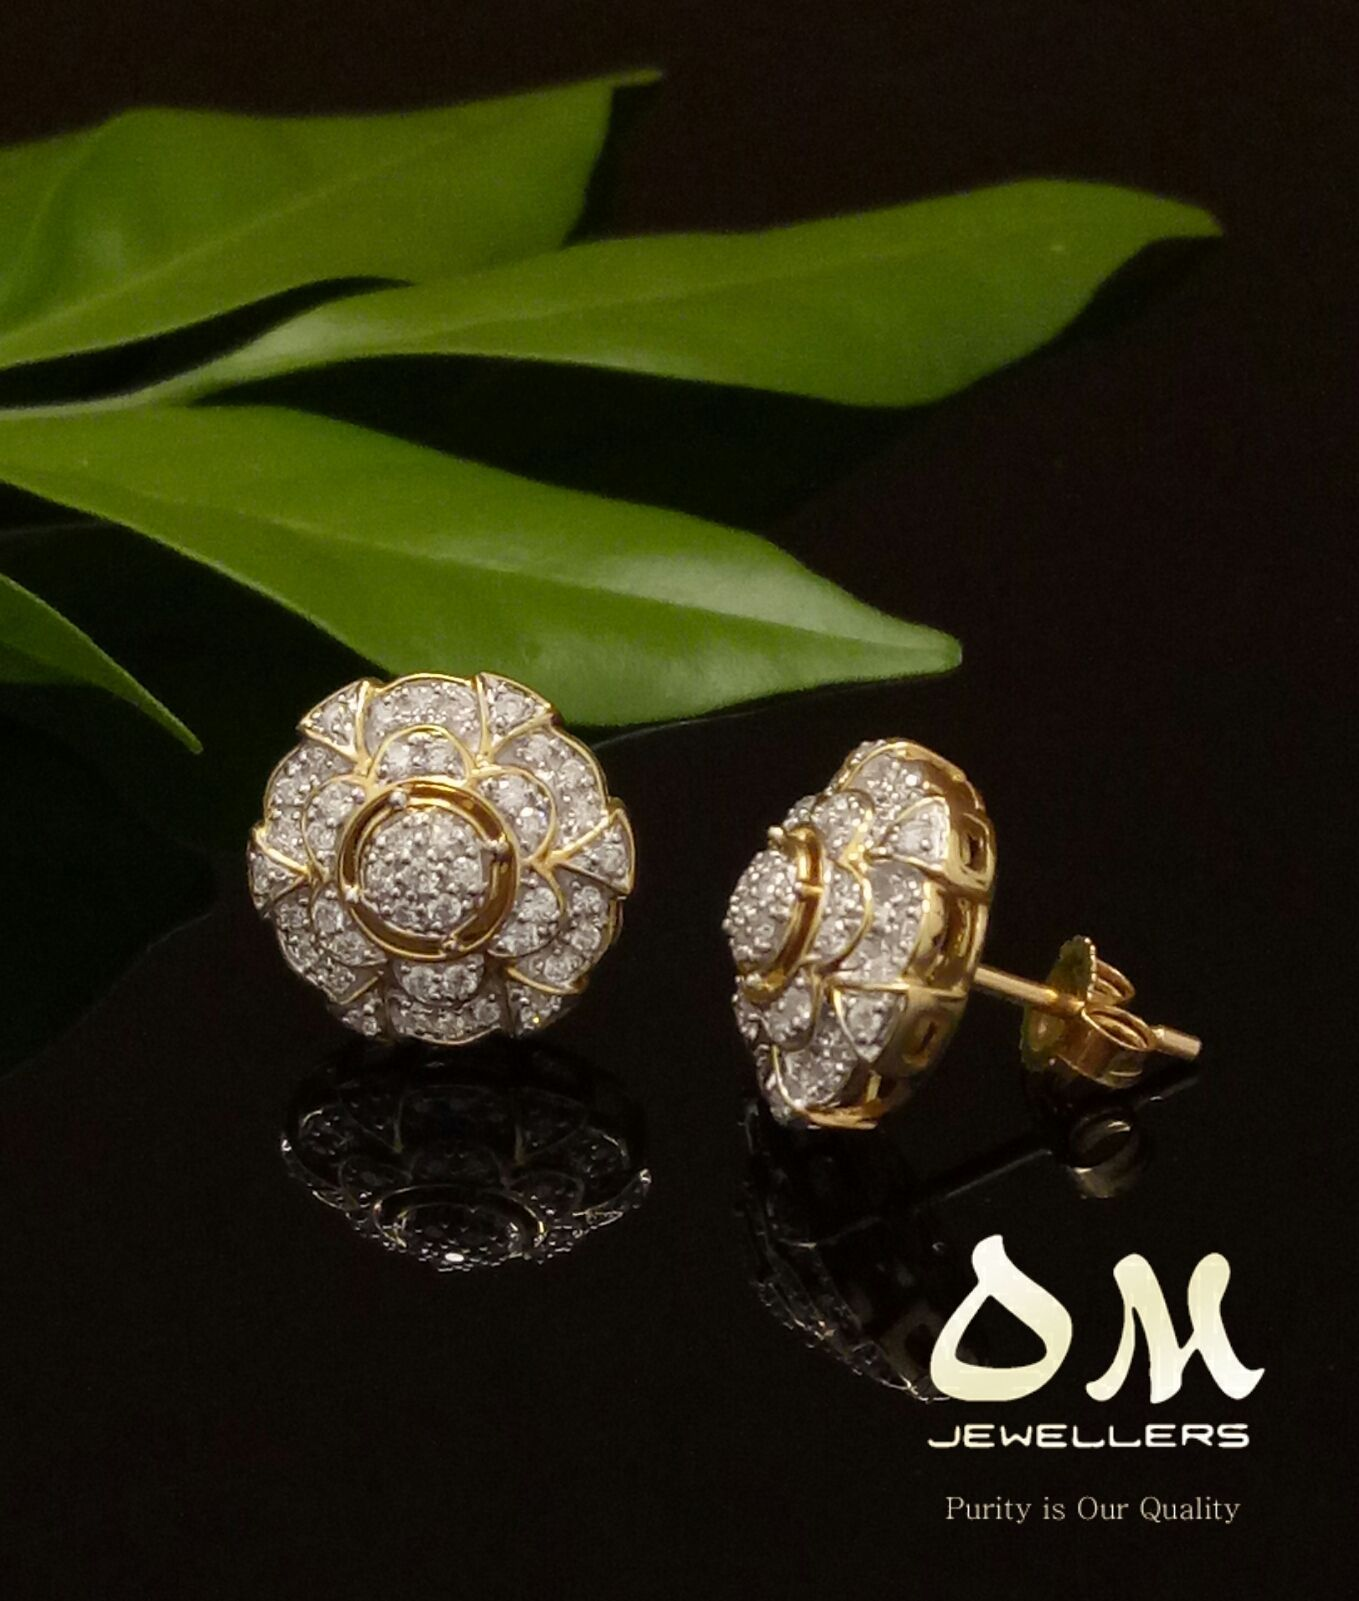 Best Prices Guaranteed Diamond Stud Earrings In 18karat Starting From 880 Omjewellers Omjewelaus Perth Brisbane Gold Yellowgold